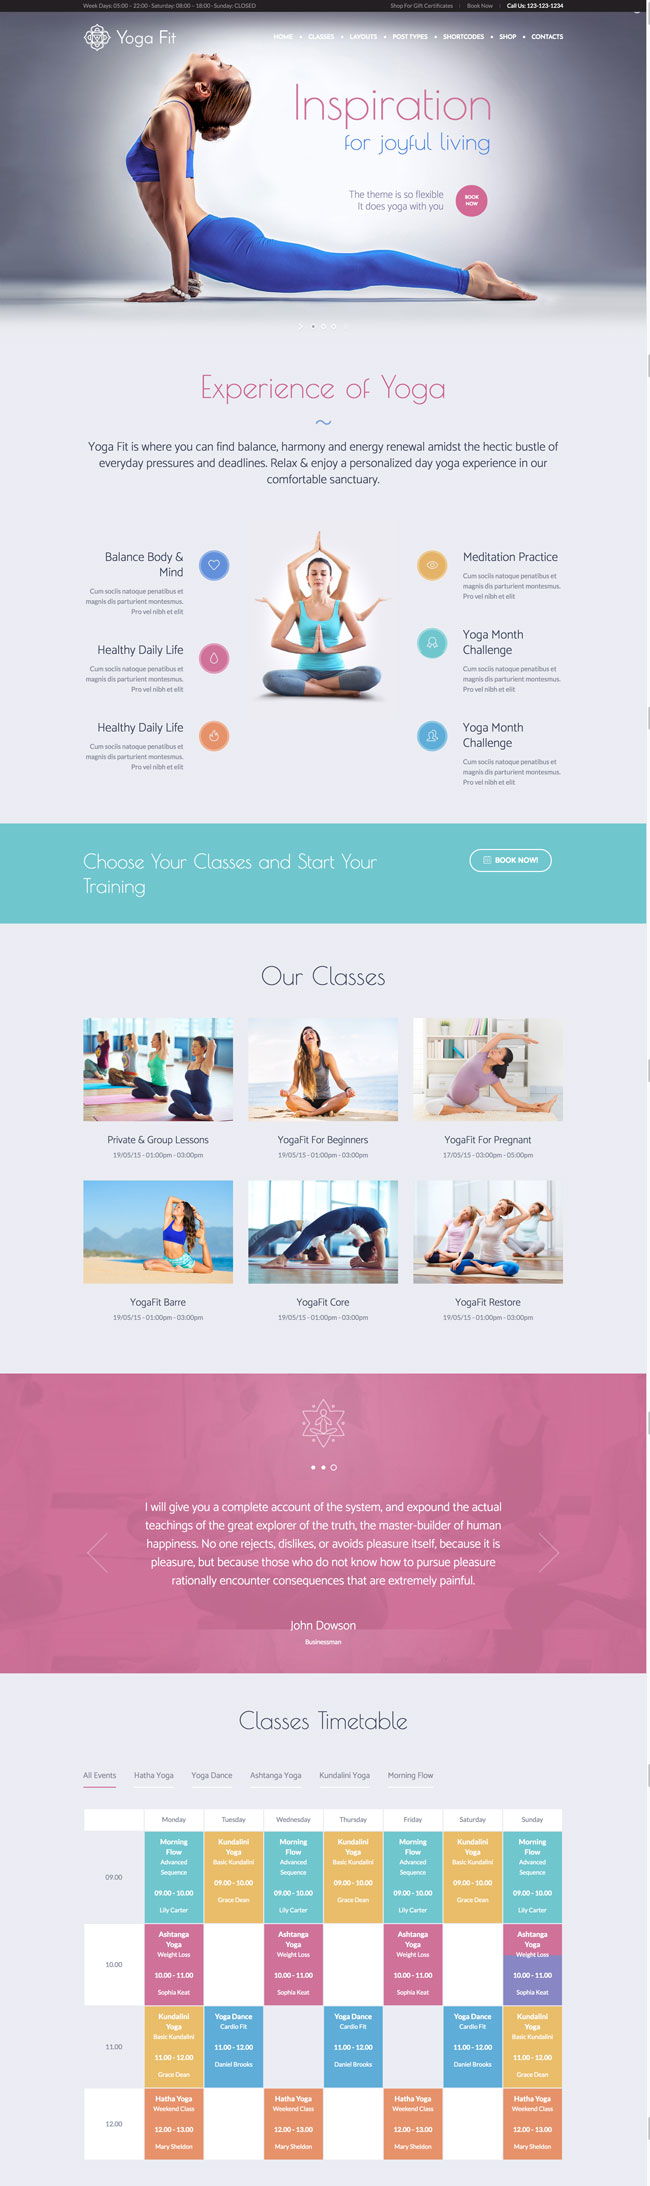 Yoga-Fit-Sports-Fitness-Gym-WordPress-Theme